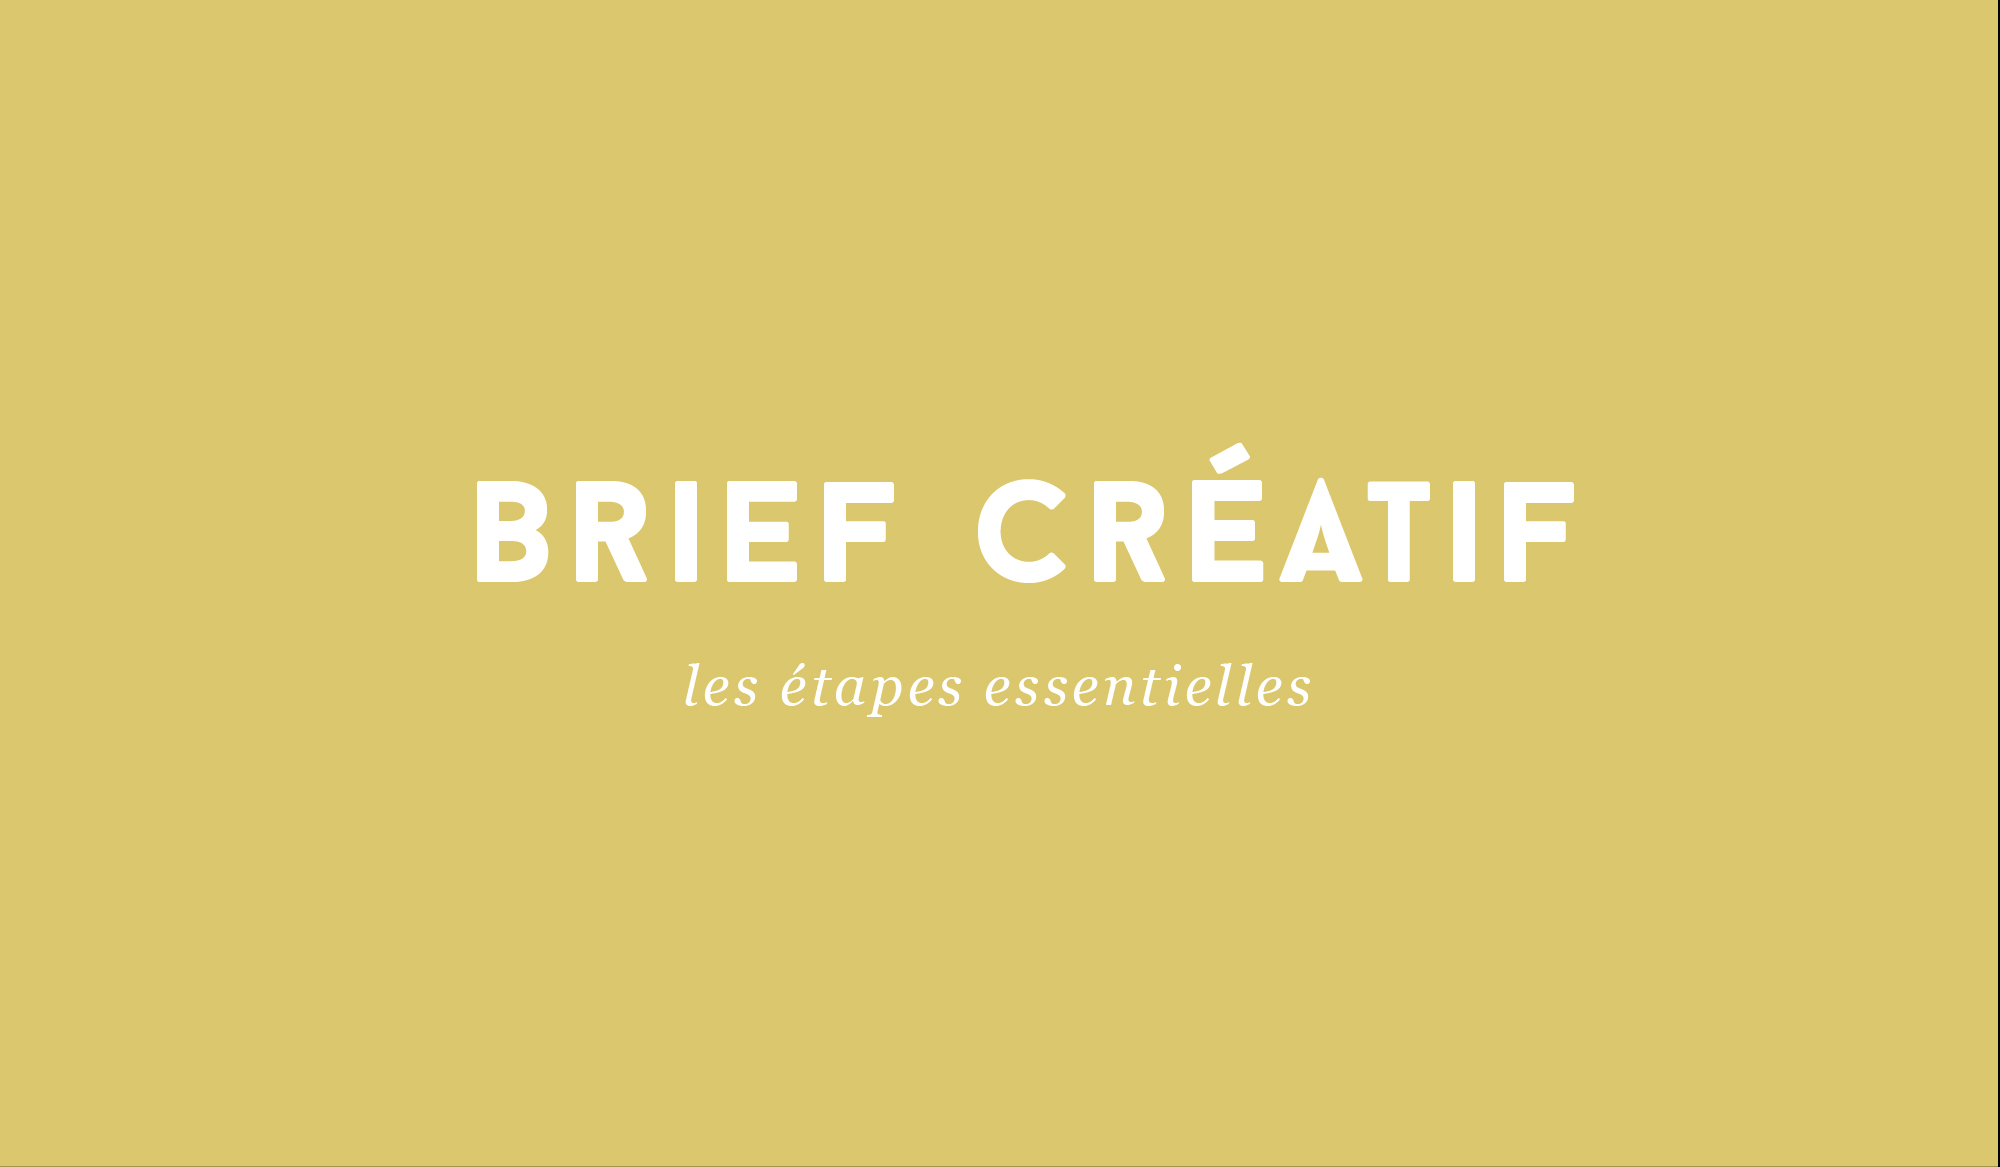 mariebabeau-graphiste-photographe-freelance-independante-poitiers-strasbourg-nantes-france-brief-creatif